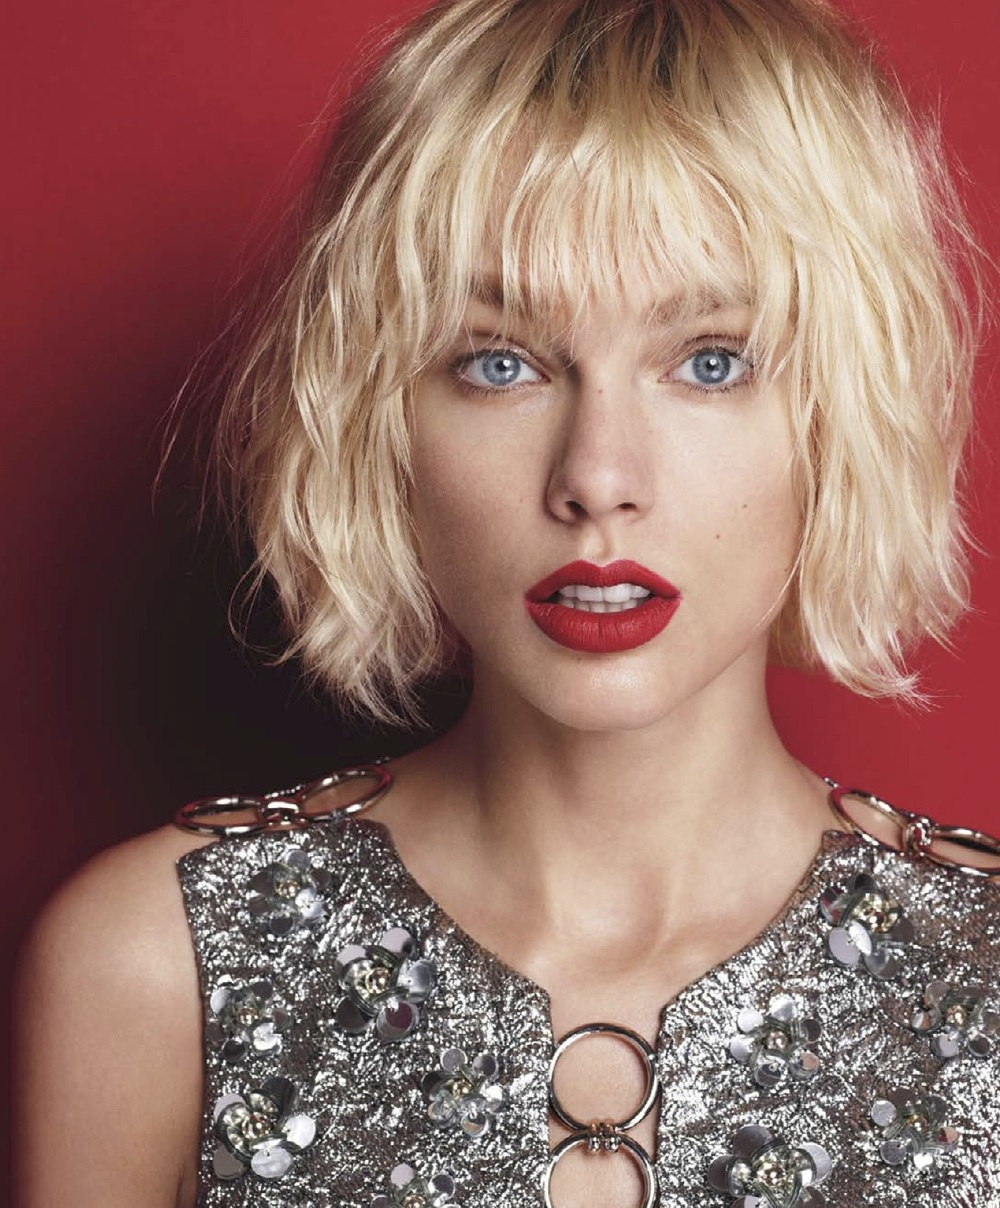 Profile: Taylor Swift